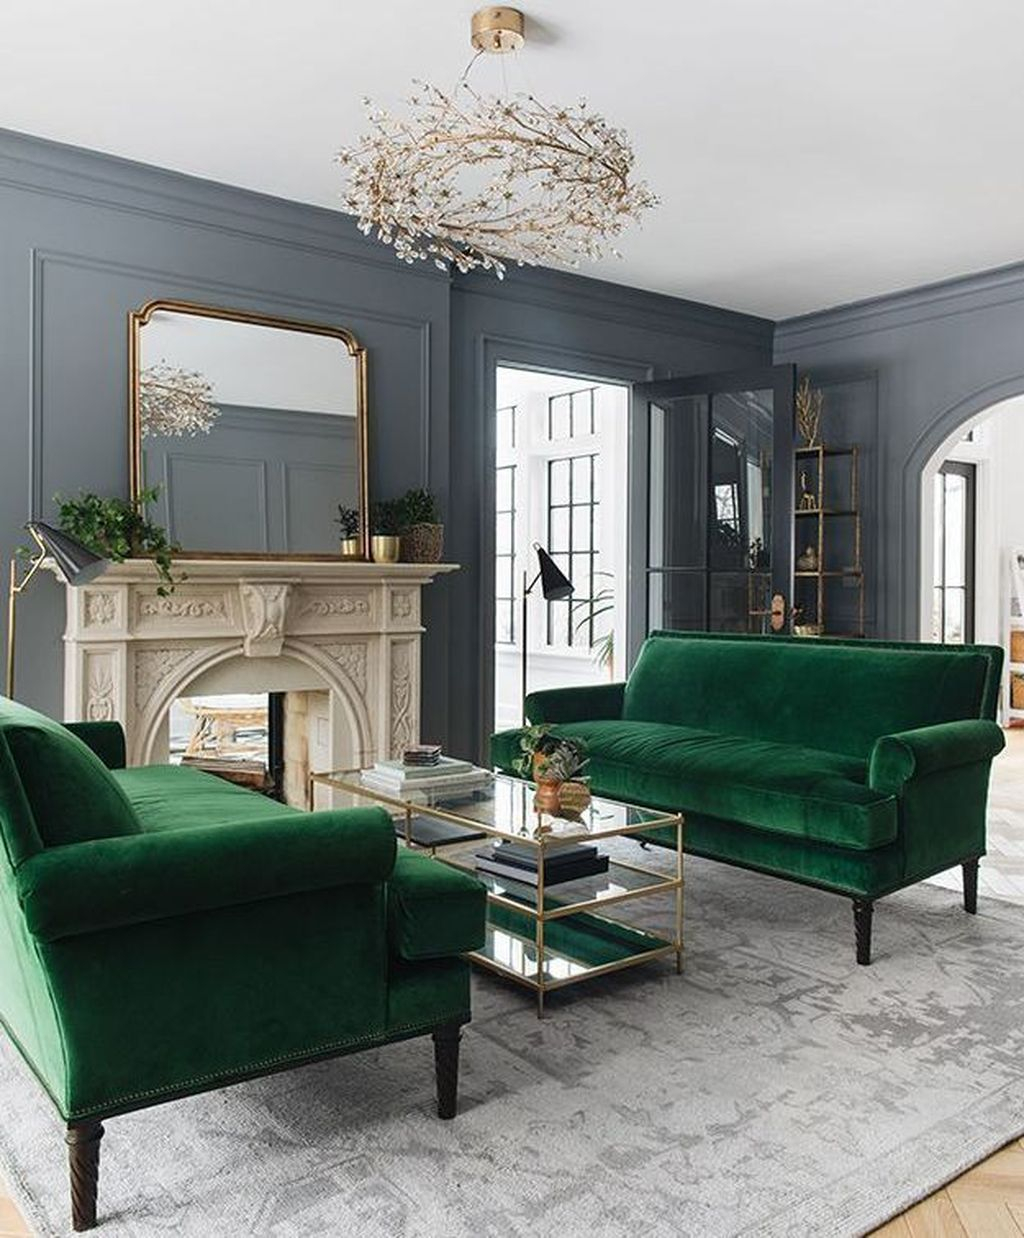 Cool Living Room Design Ideas To Make Look Confortable For Guest 20